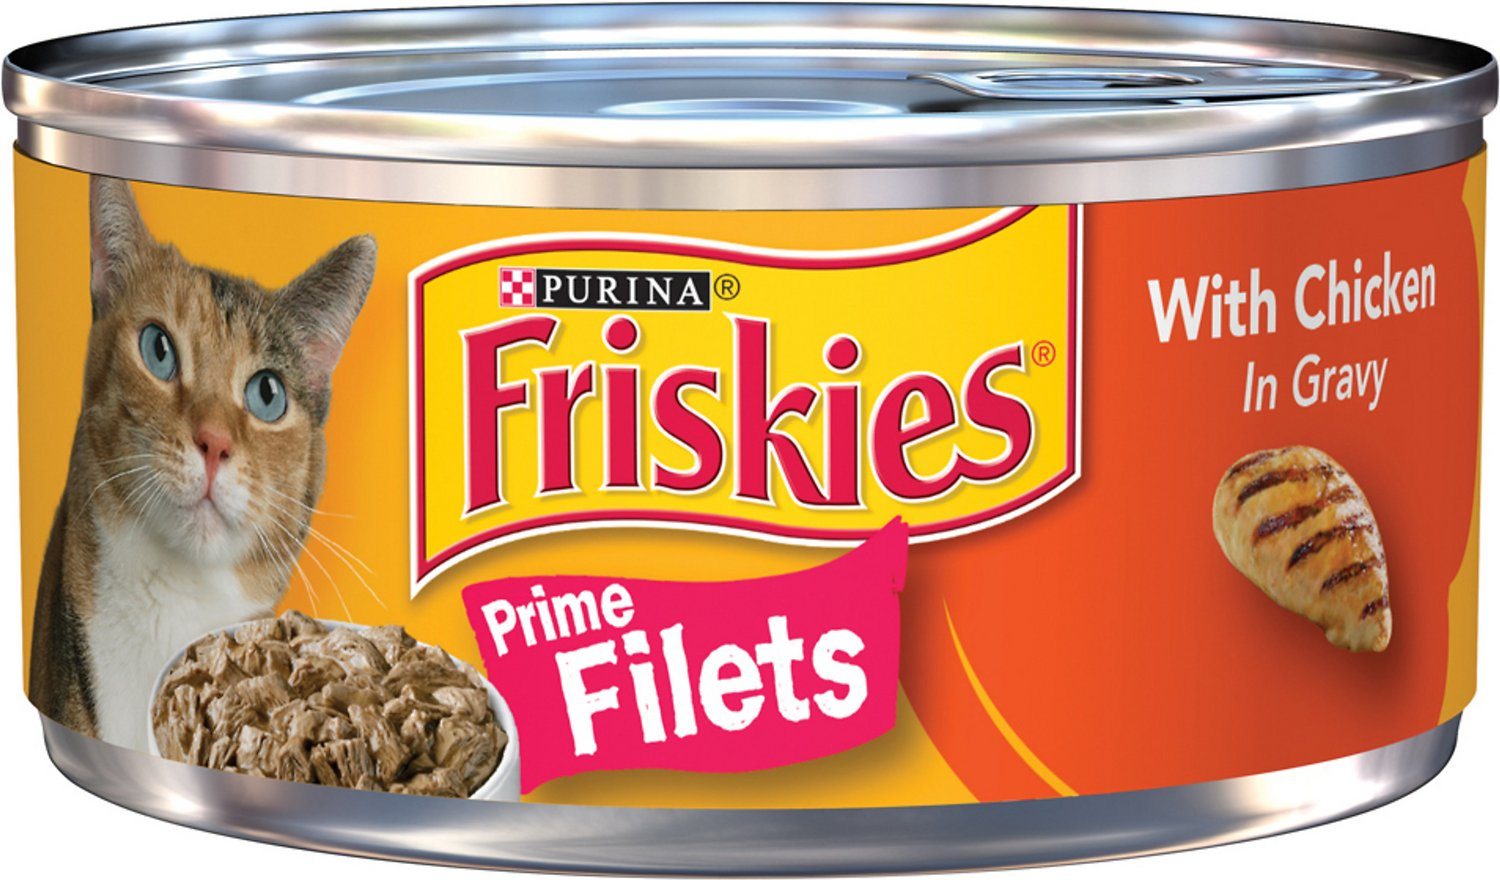 Friskies Prime Filets with Chicken in Gravy Canned Cat Food,  5.5-oz